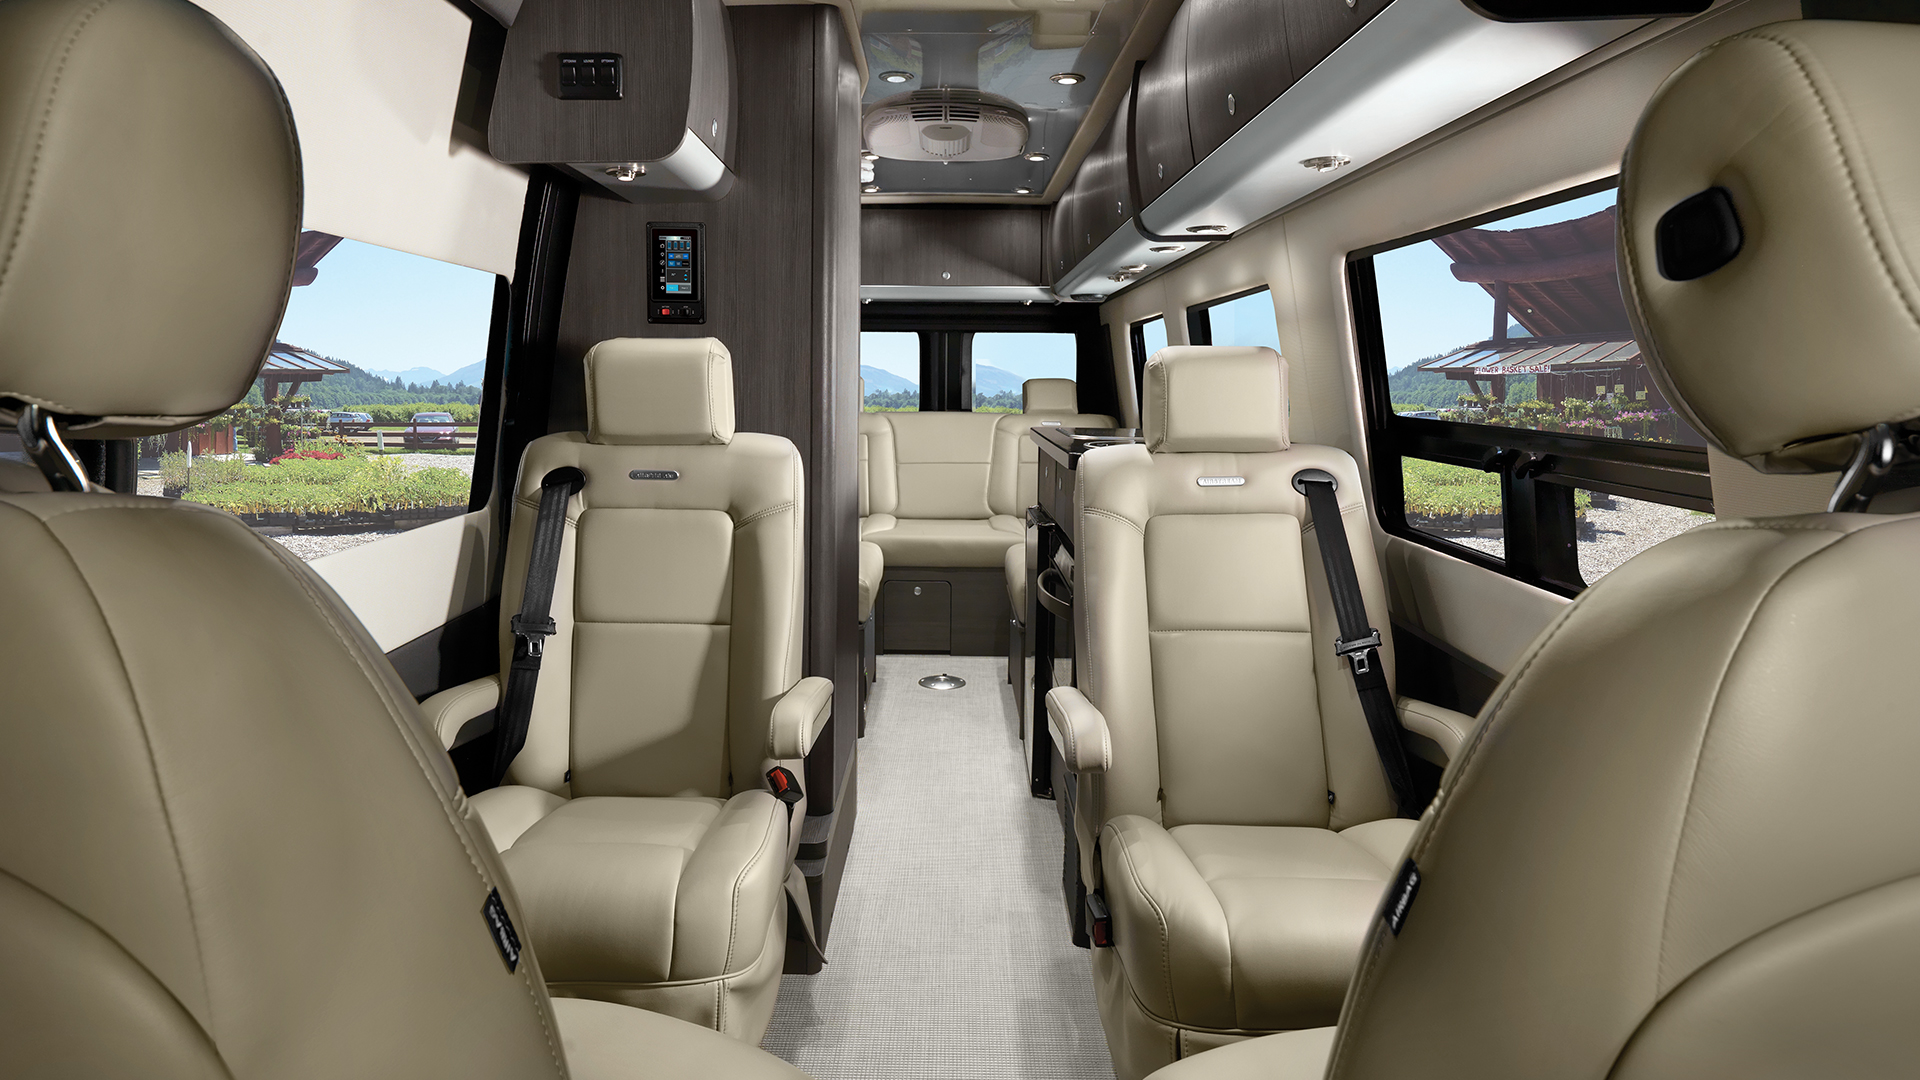 Airstream Interstate Lounge EXT Interior Seats